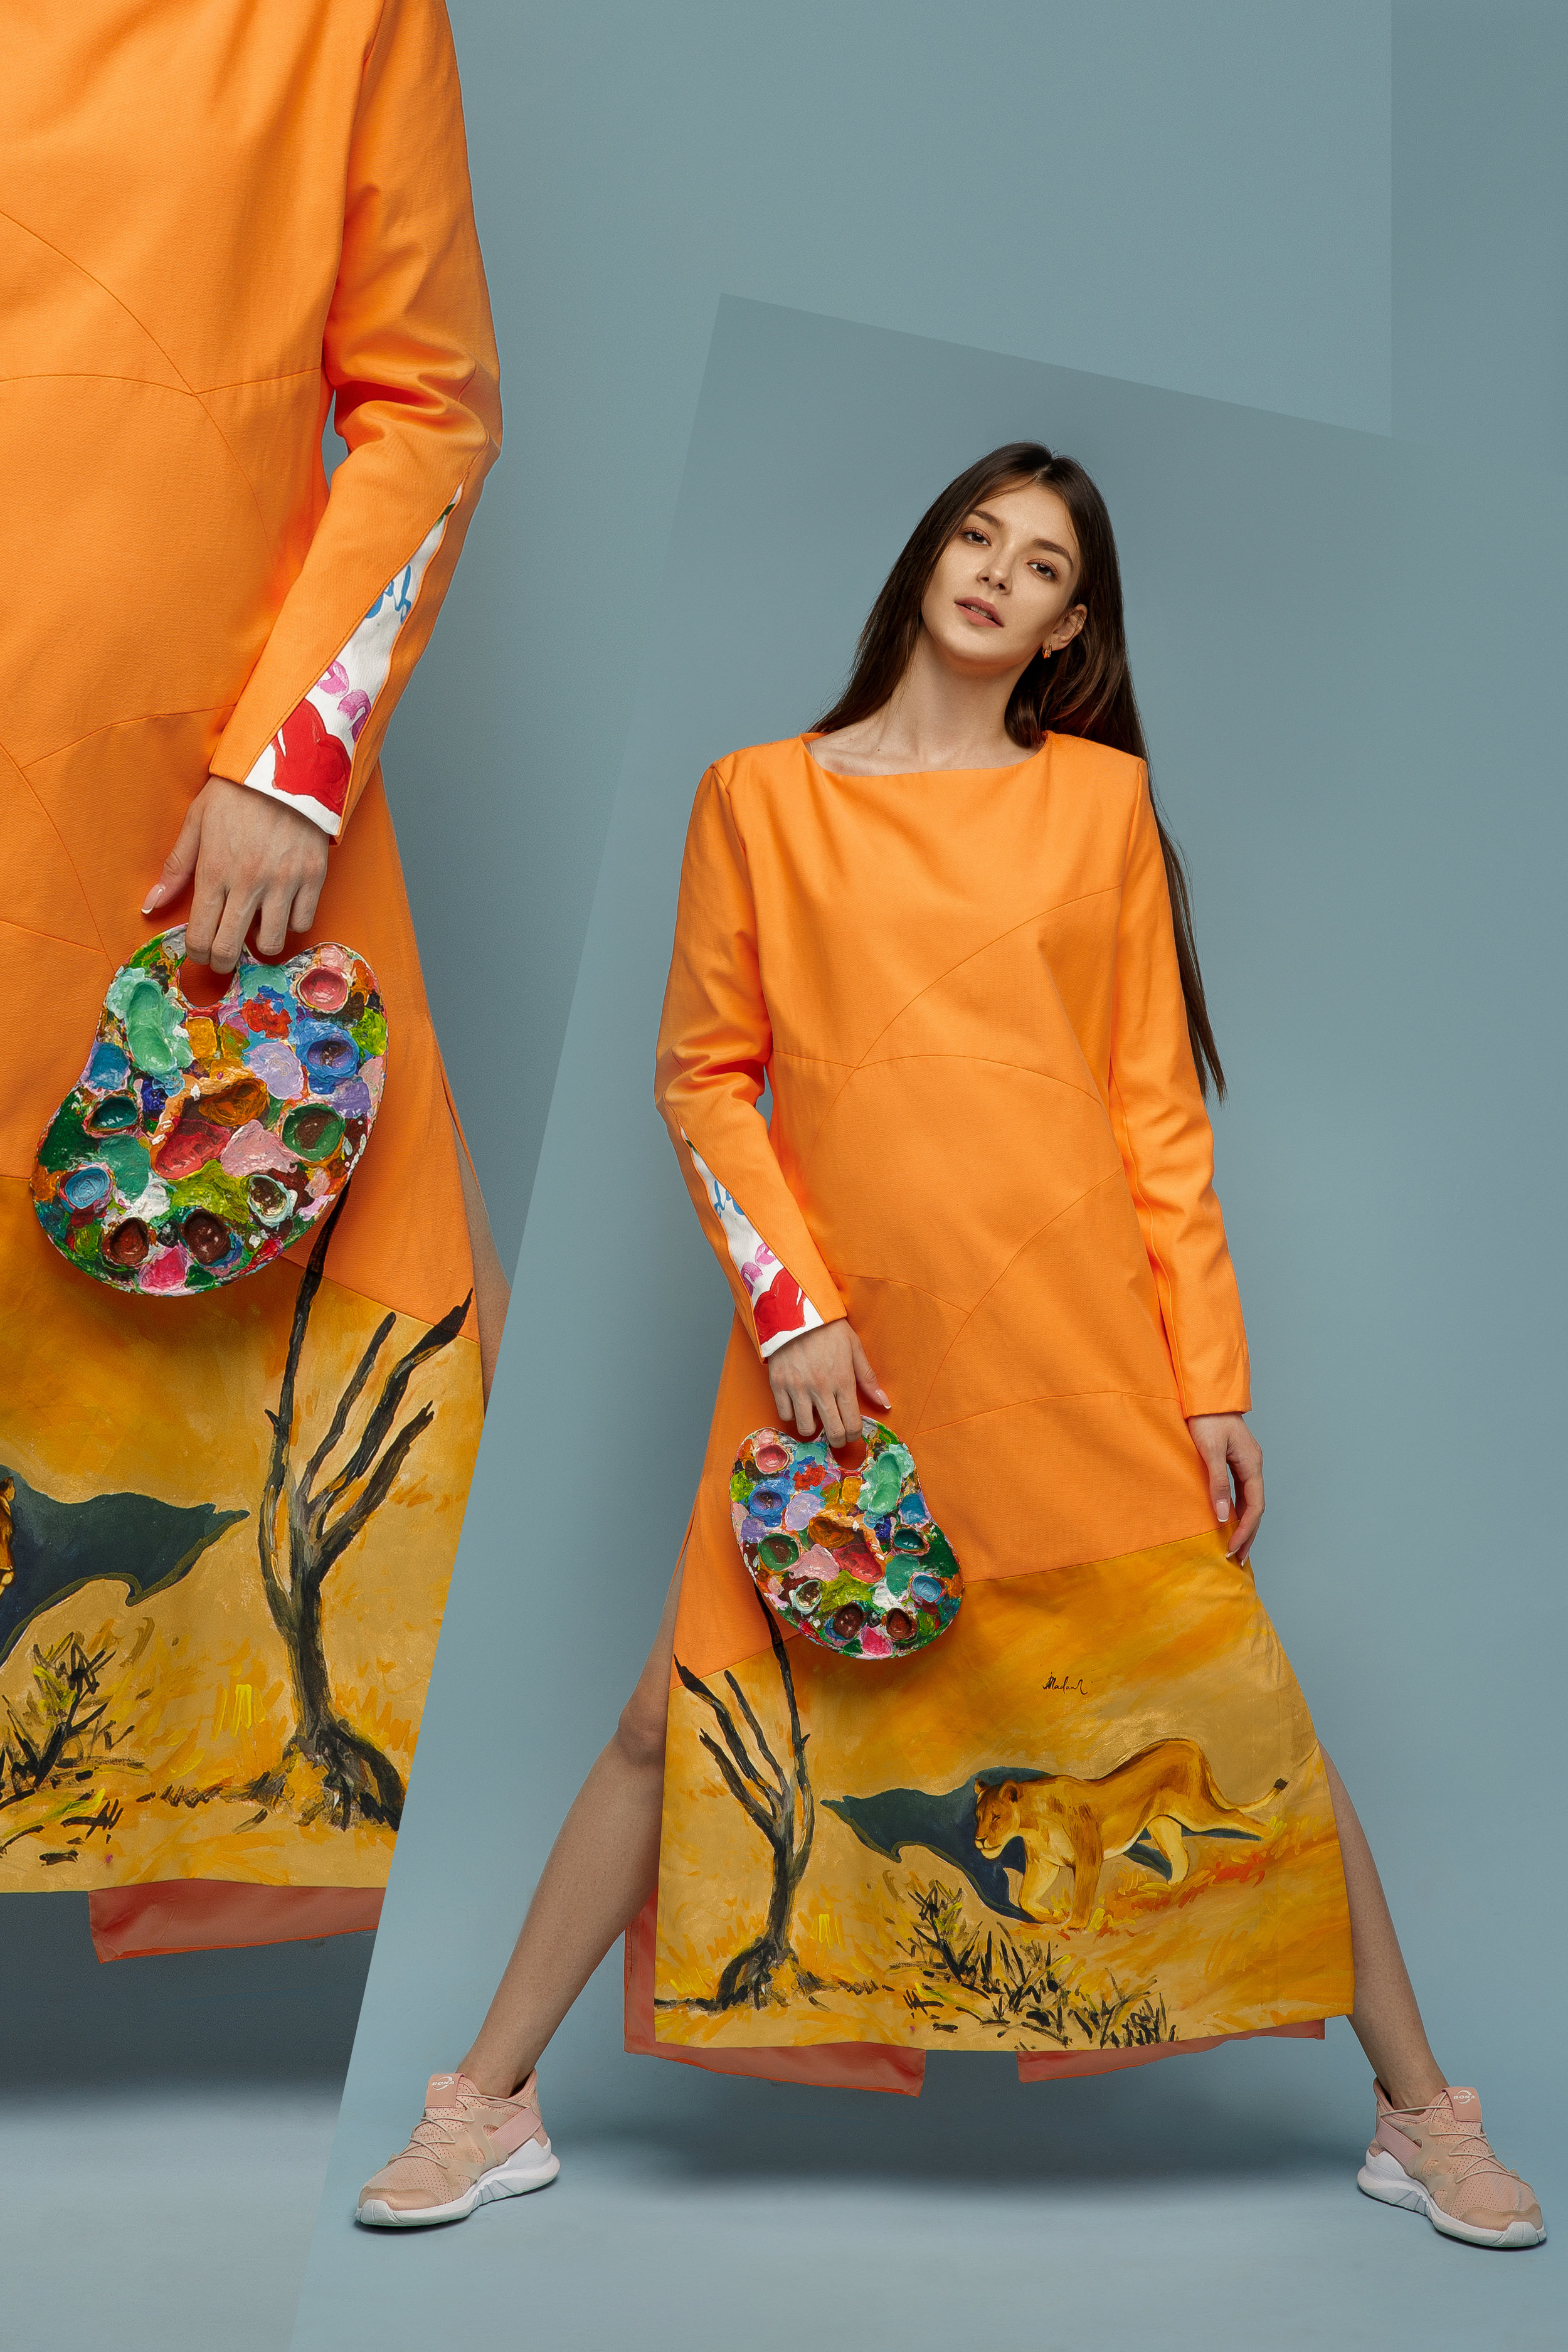 Young Lioness, Love Irina's hand painted collection that came in third at San Diego Fashion Week. -